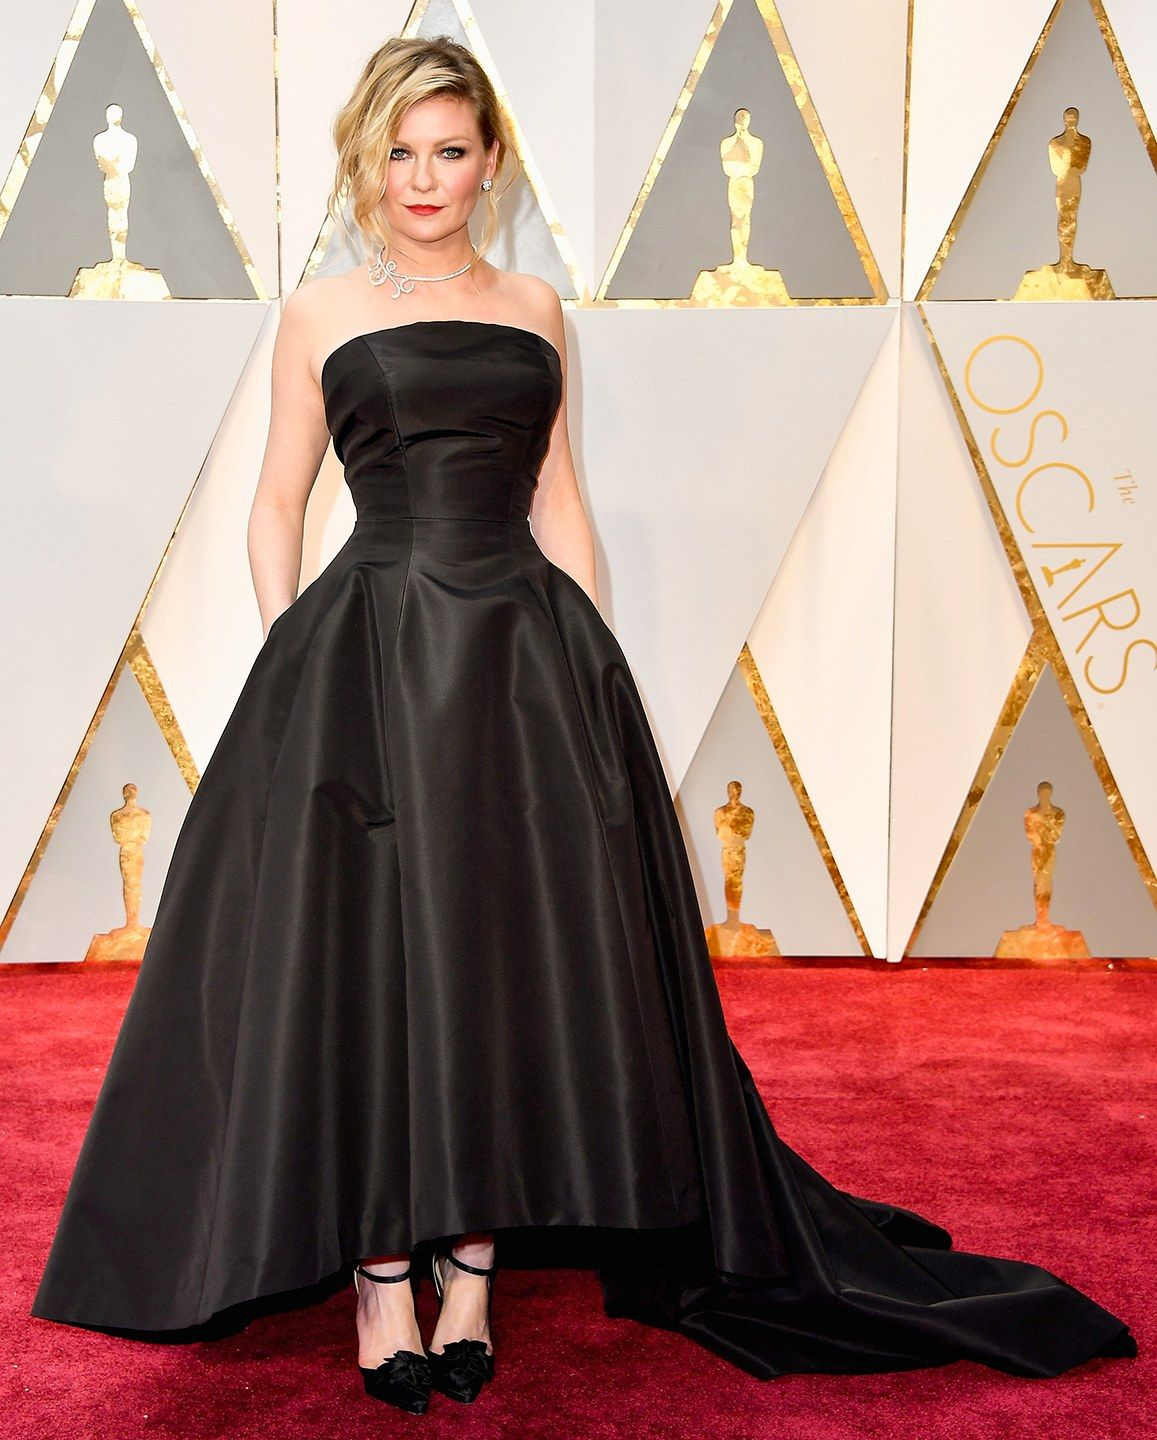 The bestdressed stars at the oscars fashion design